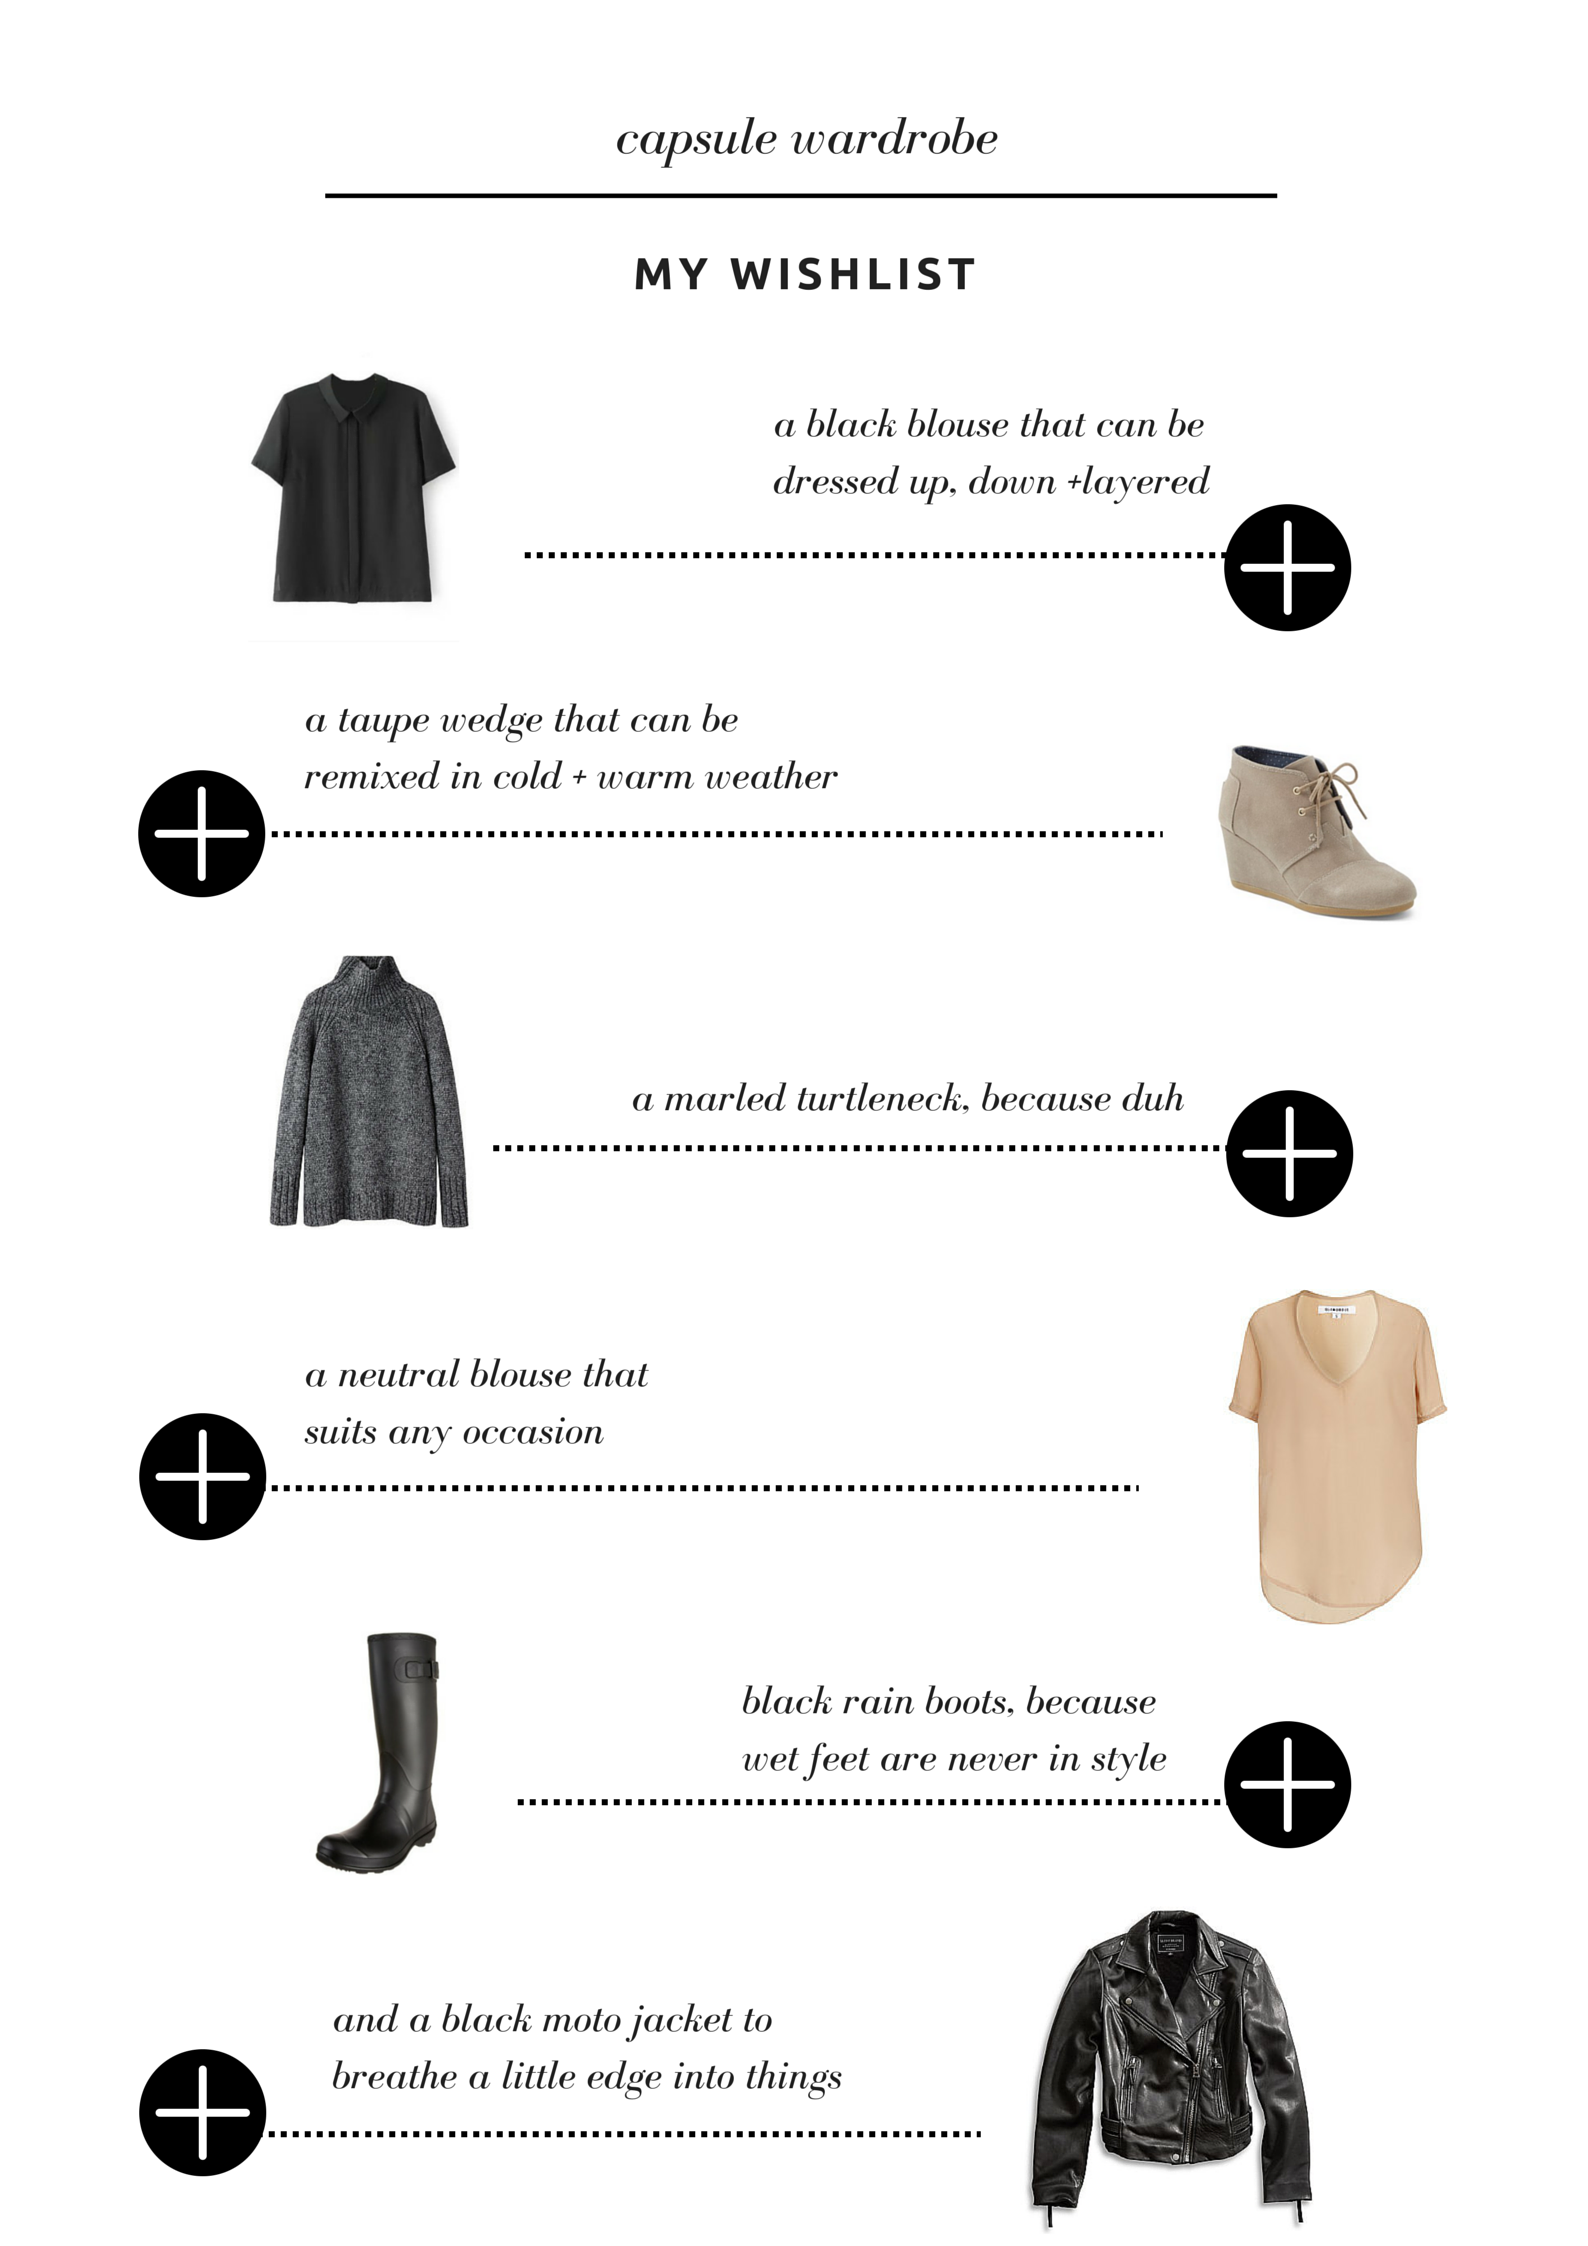 my capsule wardrobe wishlist